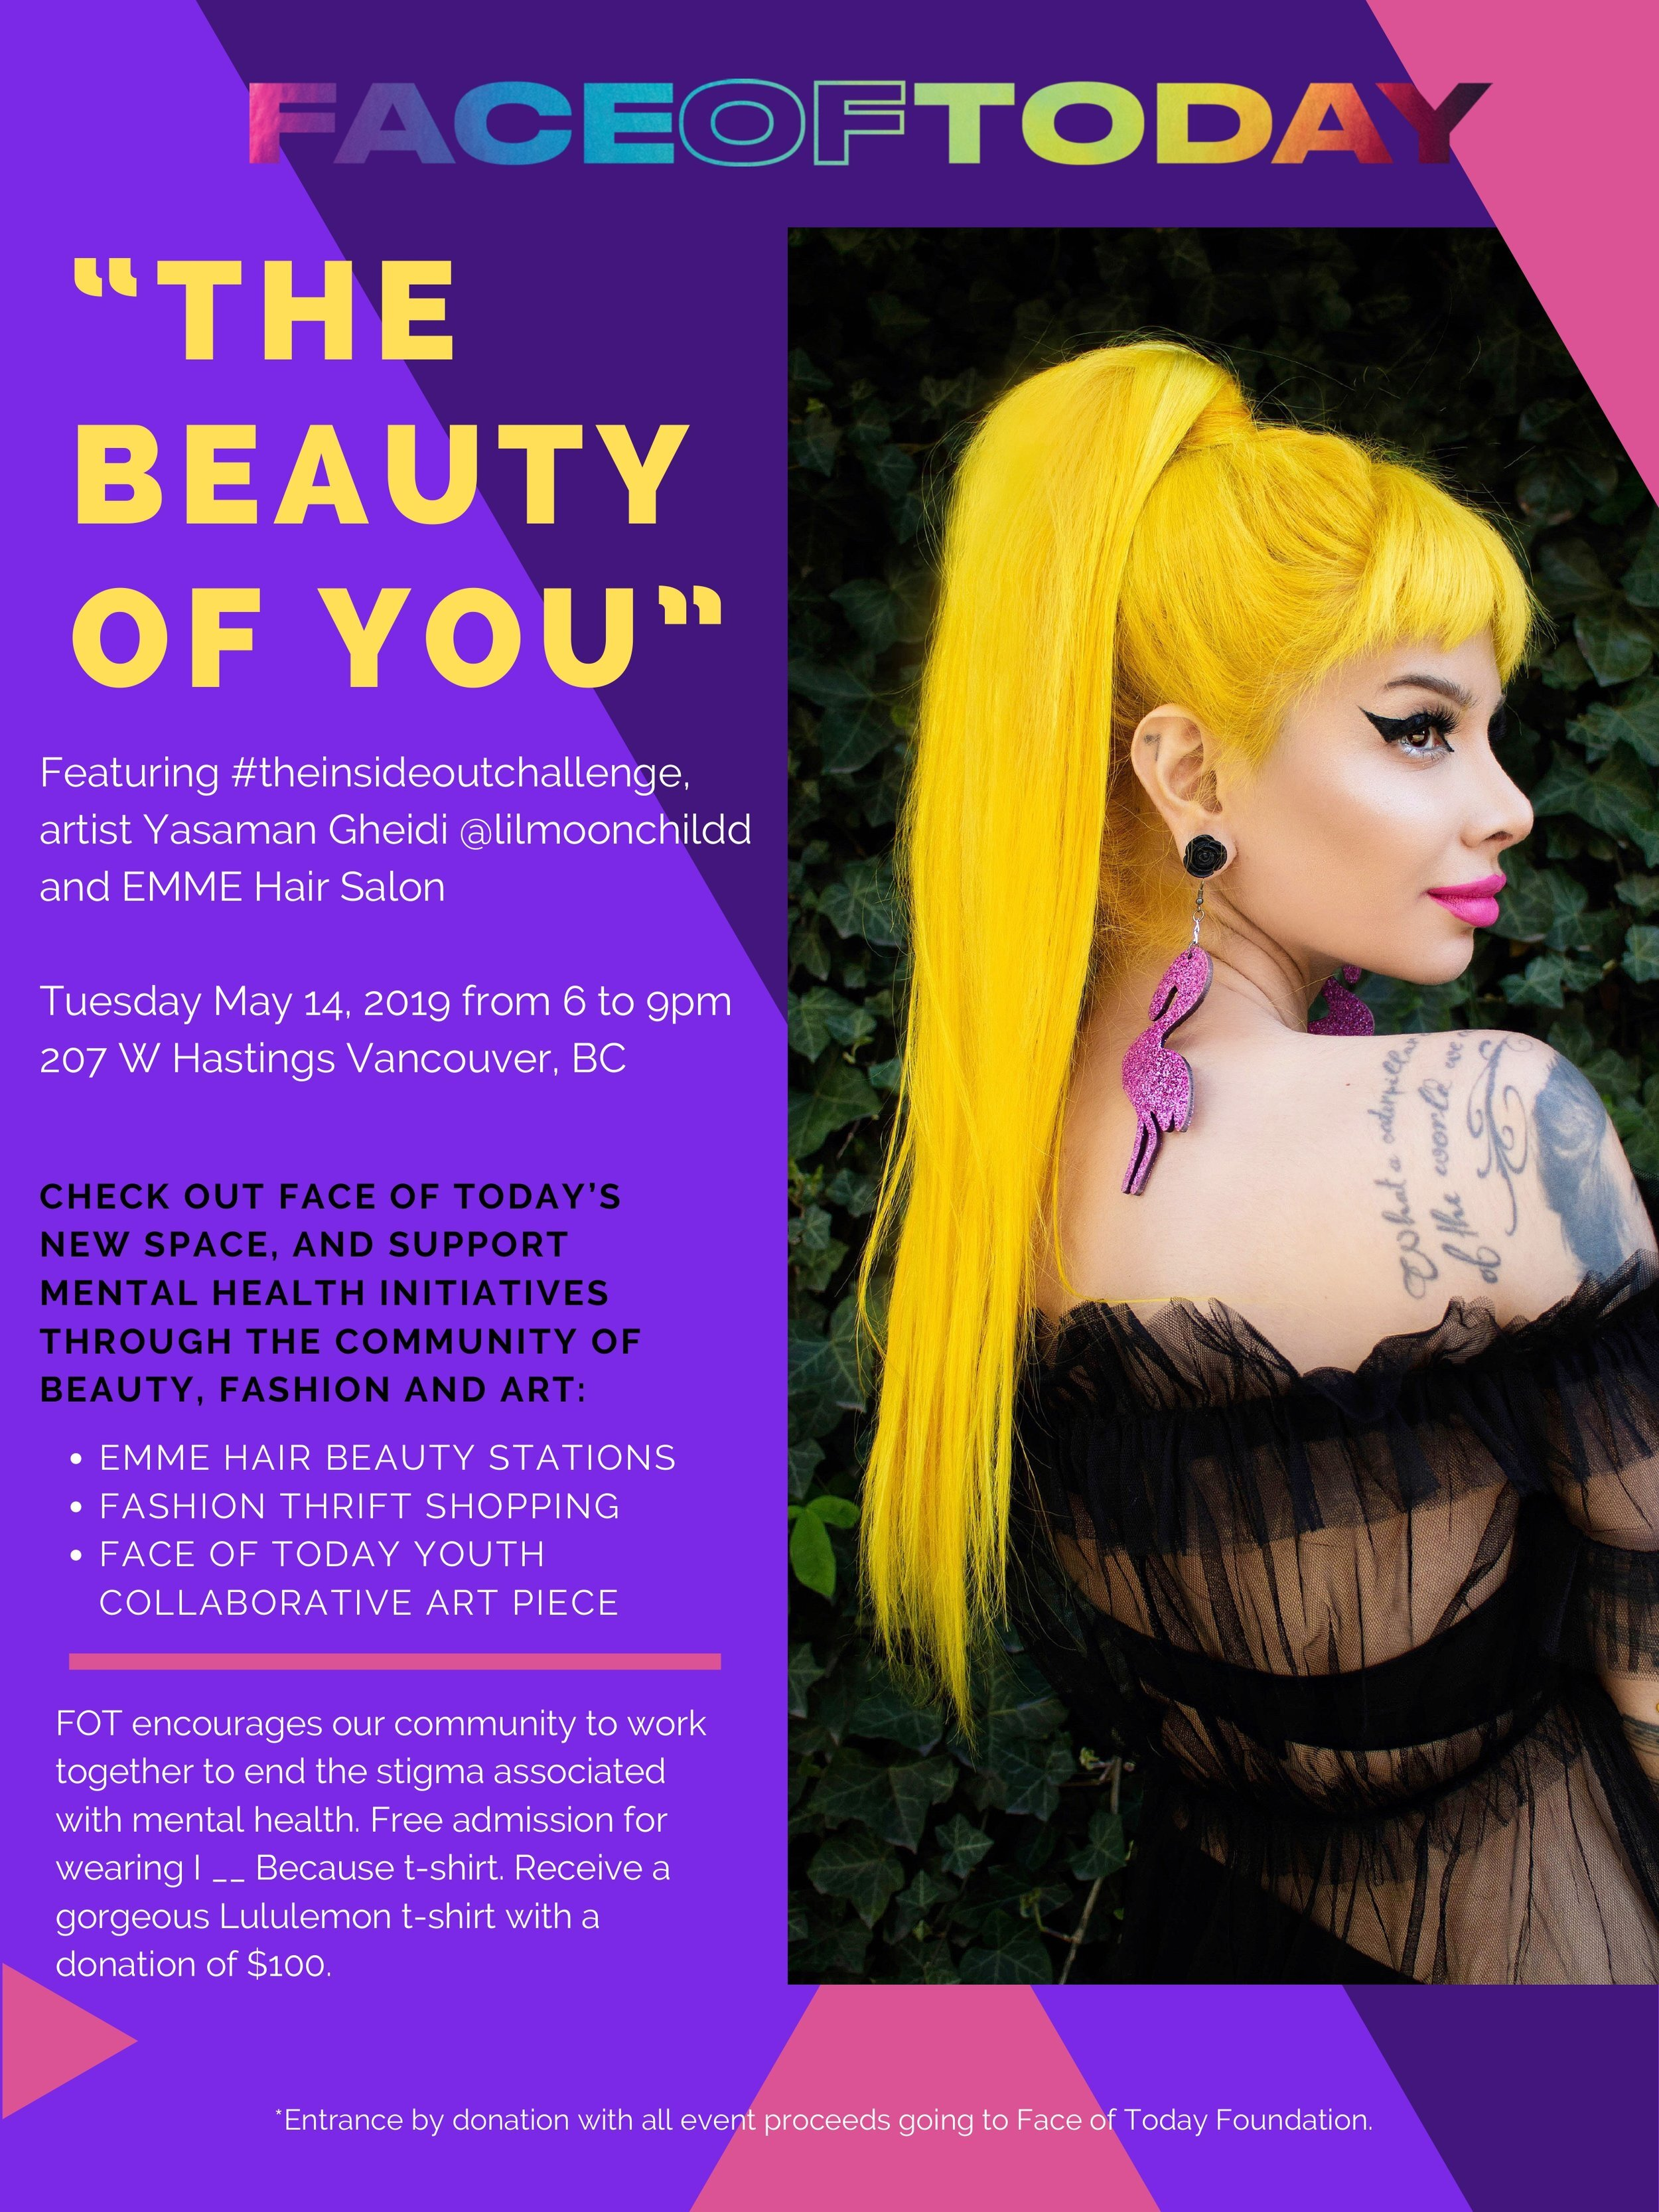 Beauty+of+You+Poster_page-0001-2.jpg